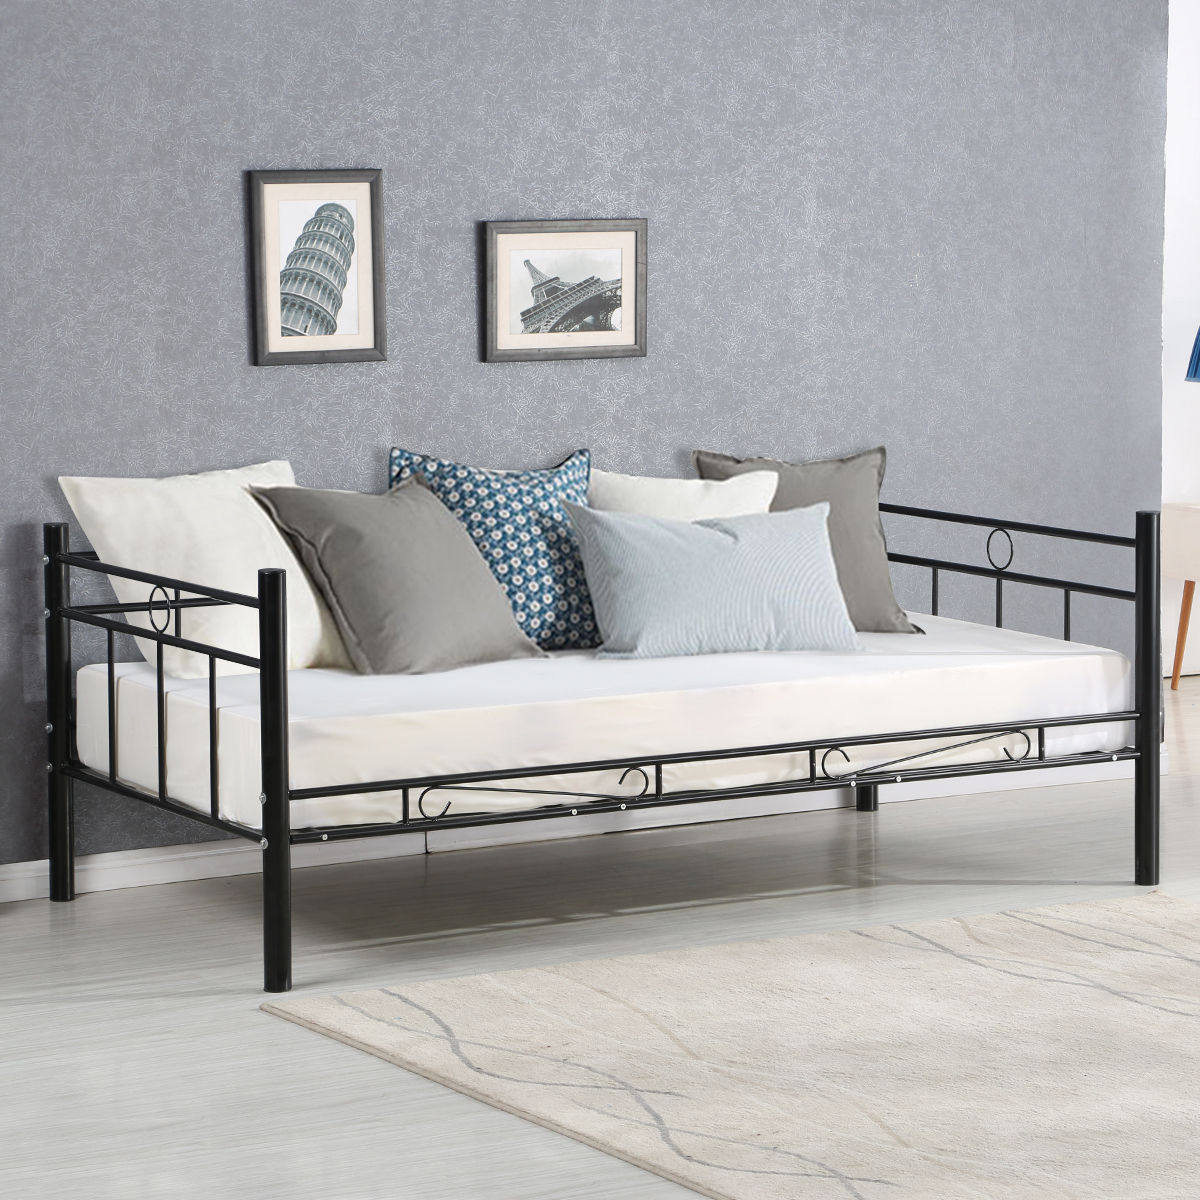 Giantex Twin Size Daybed Sofa Bed Bedroom Modern Metal